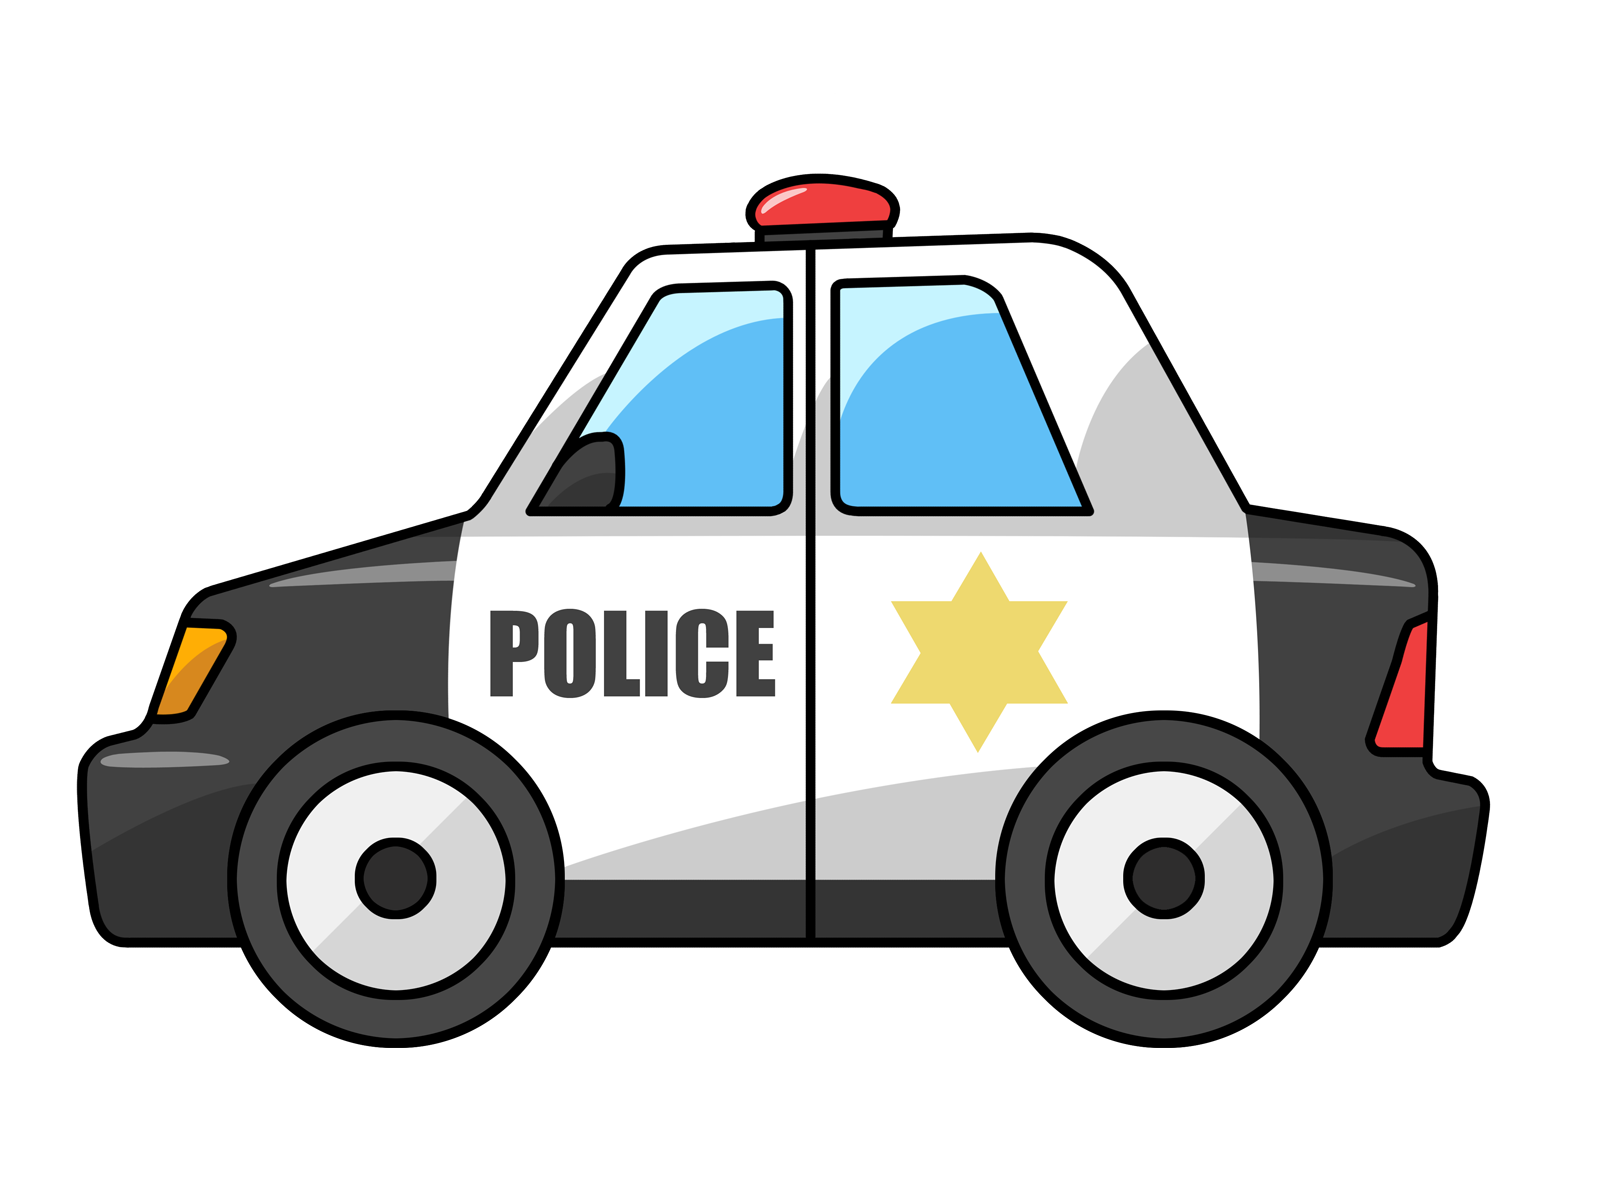 Drawn vehicle police car ClipArt Best Use Art Police